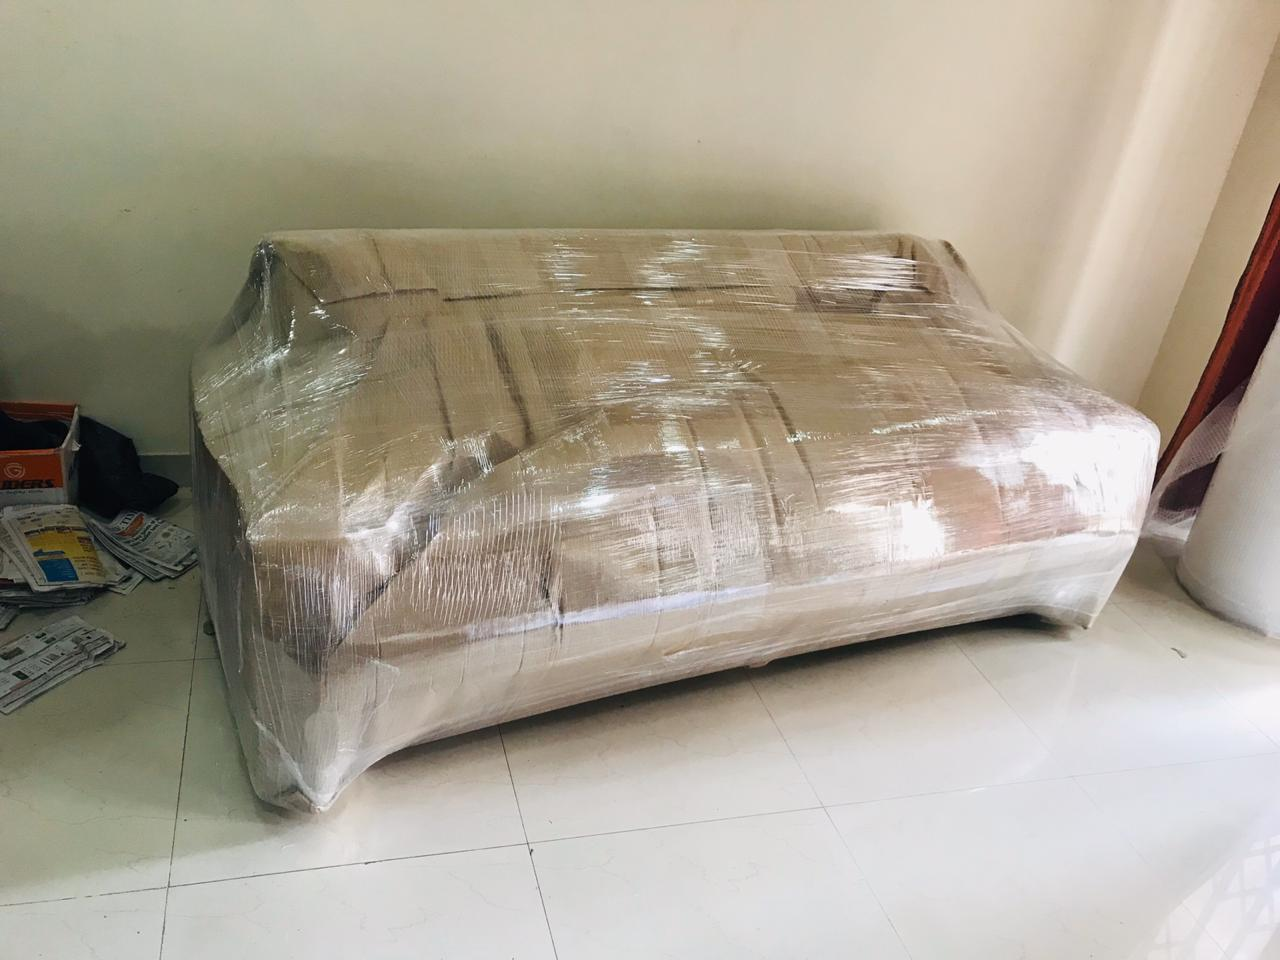 3 Setter Sofa Packed With FoamSheet, Air Bubble Brown Sheet, Lamination, Tape